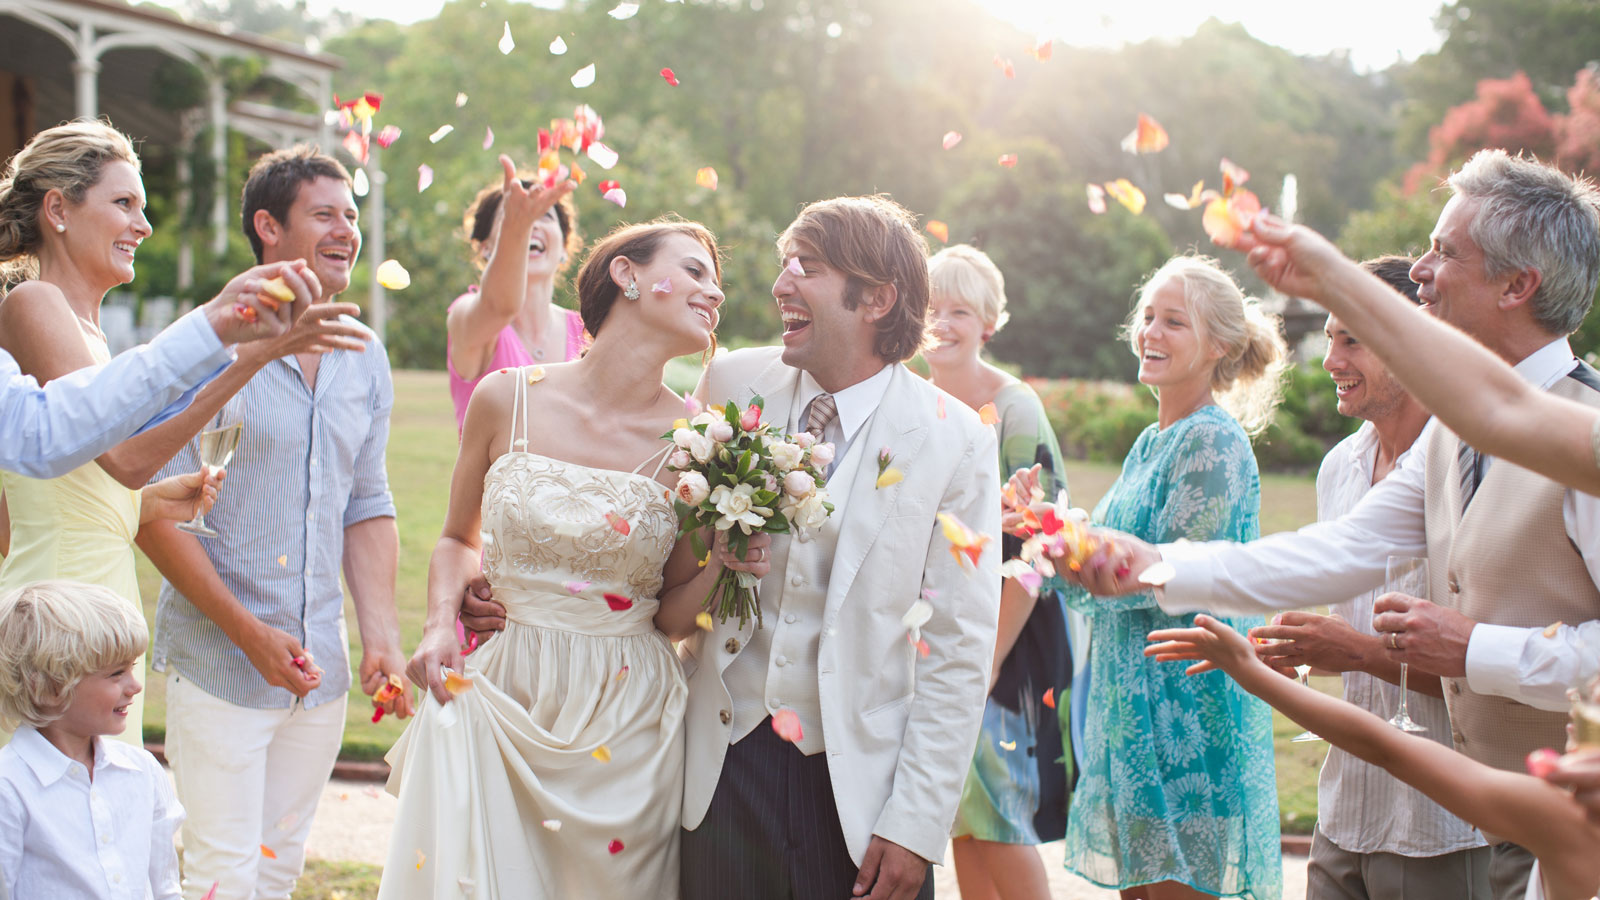 Five Most Expensive Wedding Venues in the U.S.